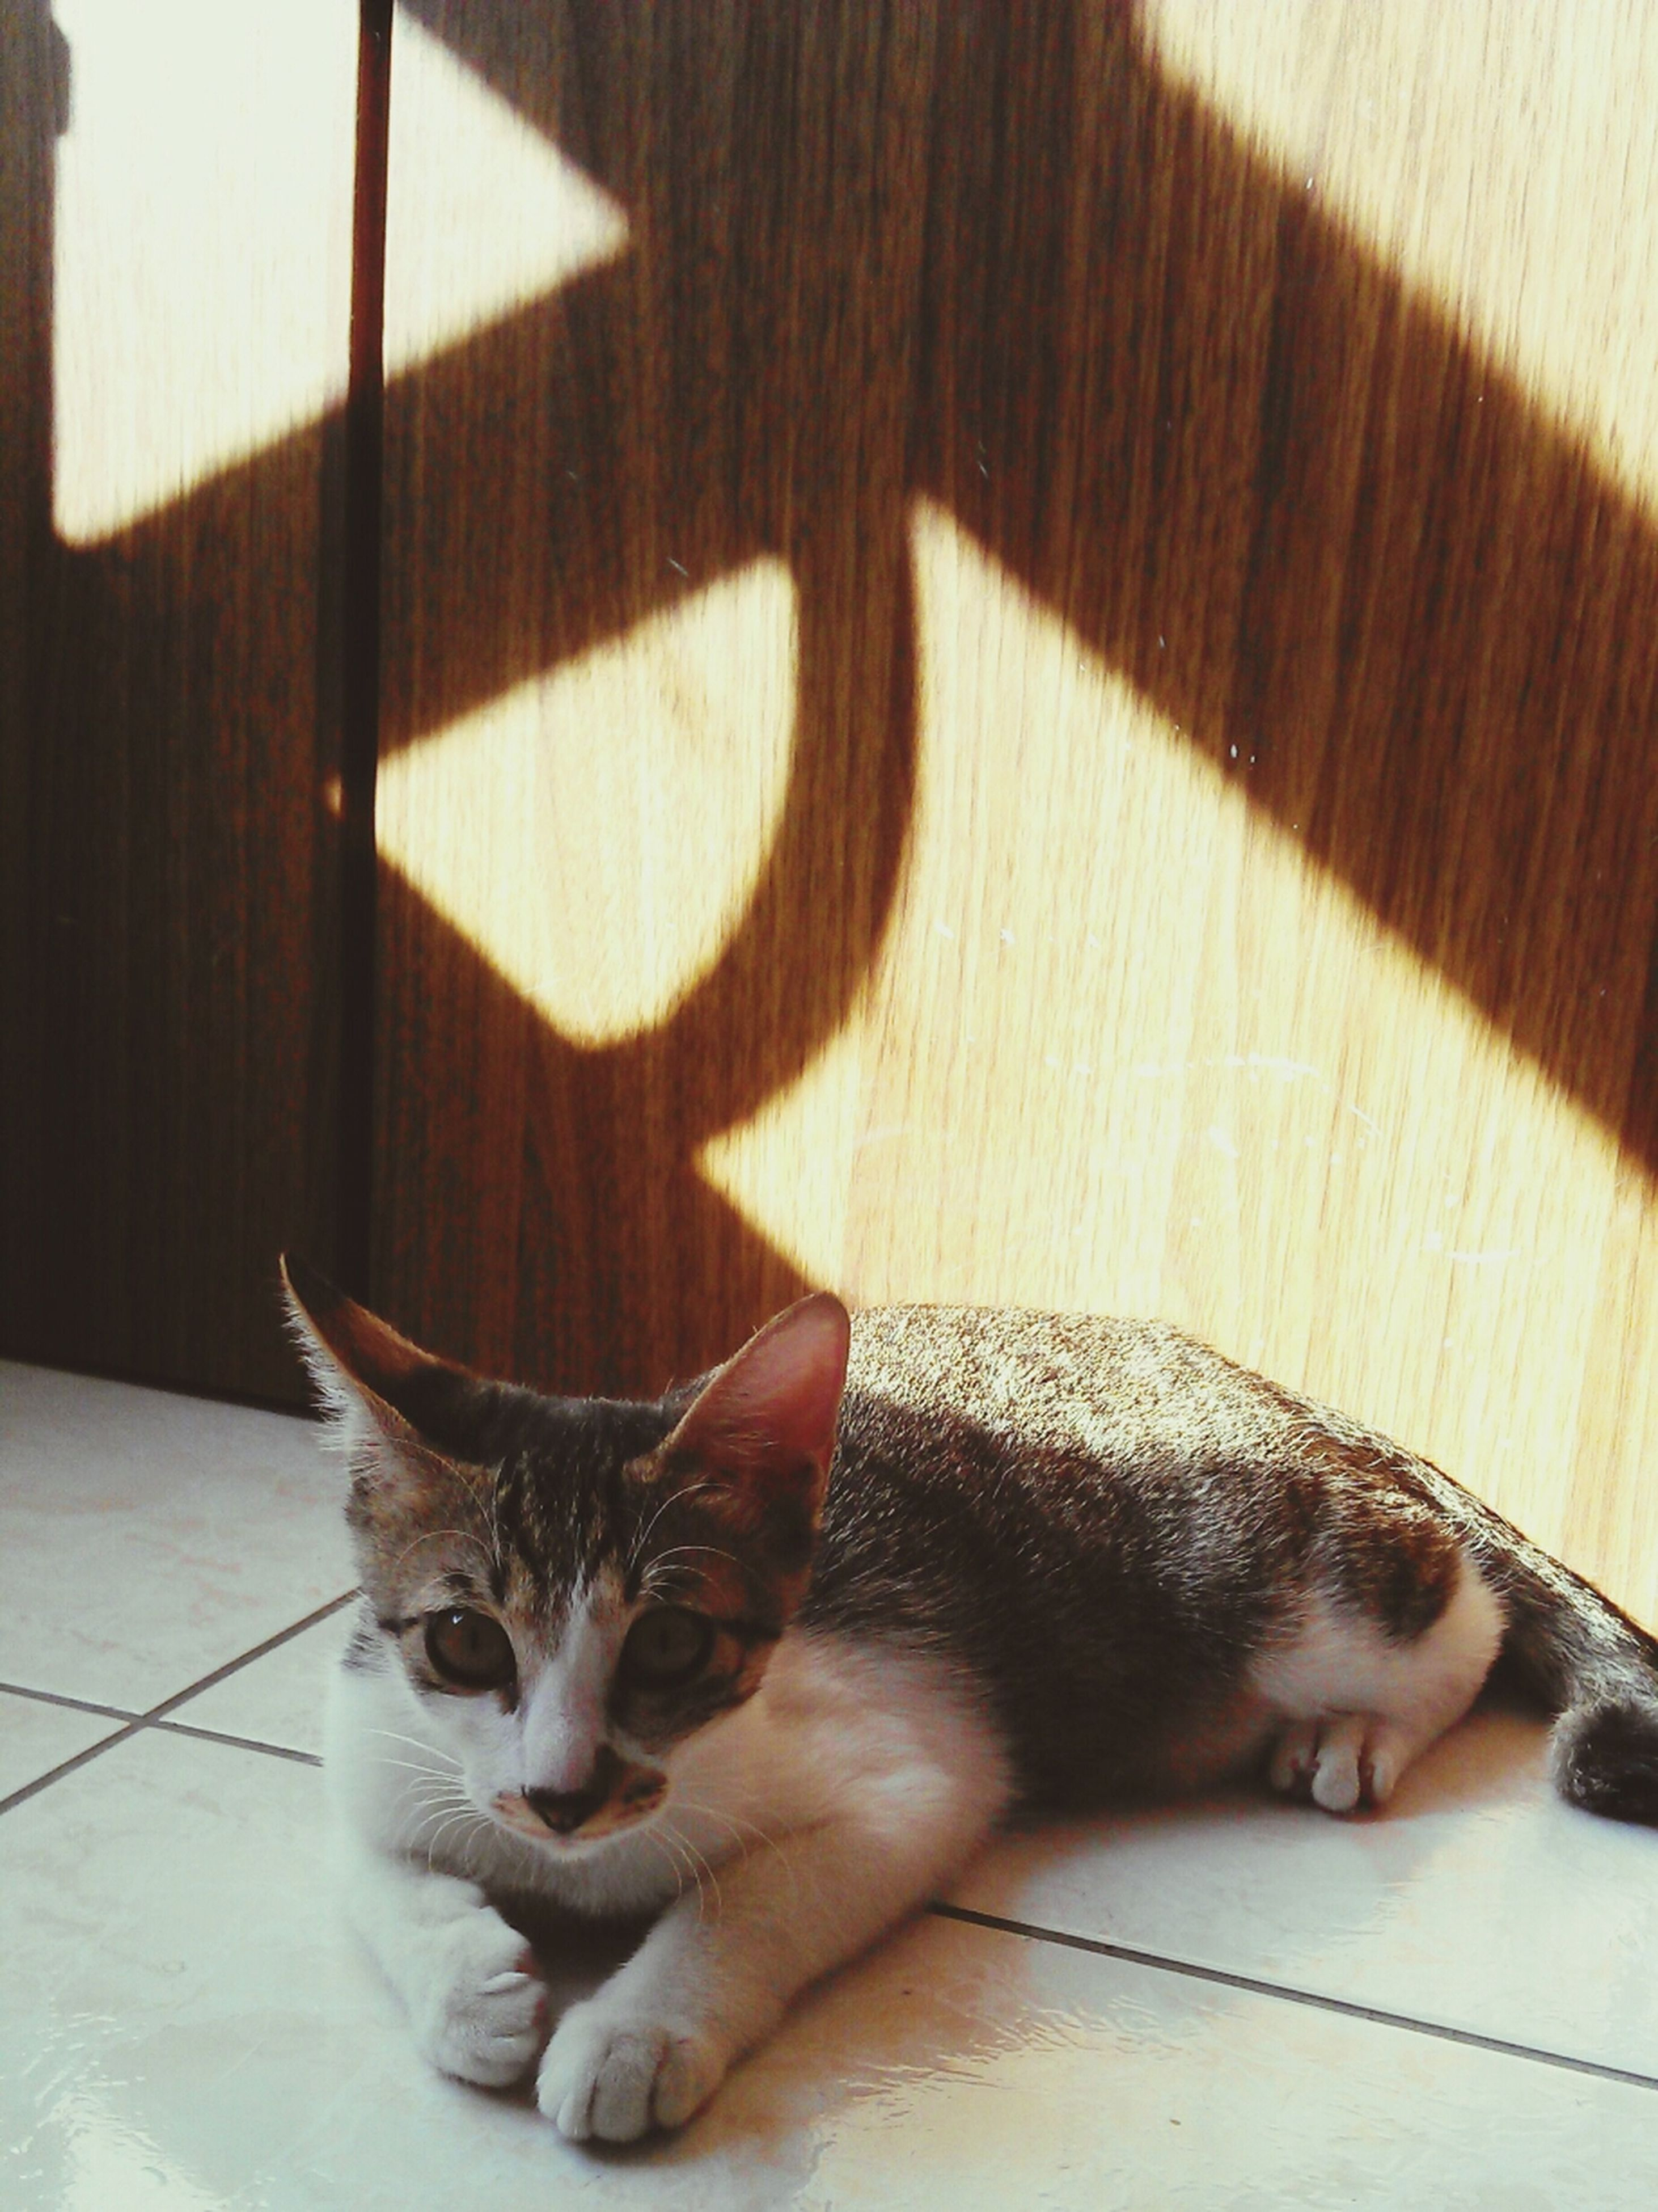 pets, domestic animals, mammal, animal themes, domestic cat, one animal, cat, feline, relaxation, lying down, whisker, resting, indoors, looking at camera, portrait, home interior, sitting, high angle view, flooring, relaxing